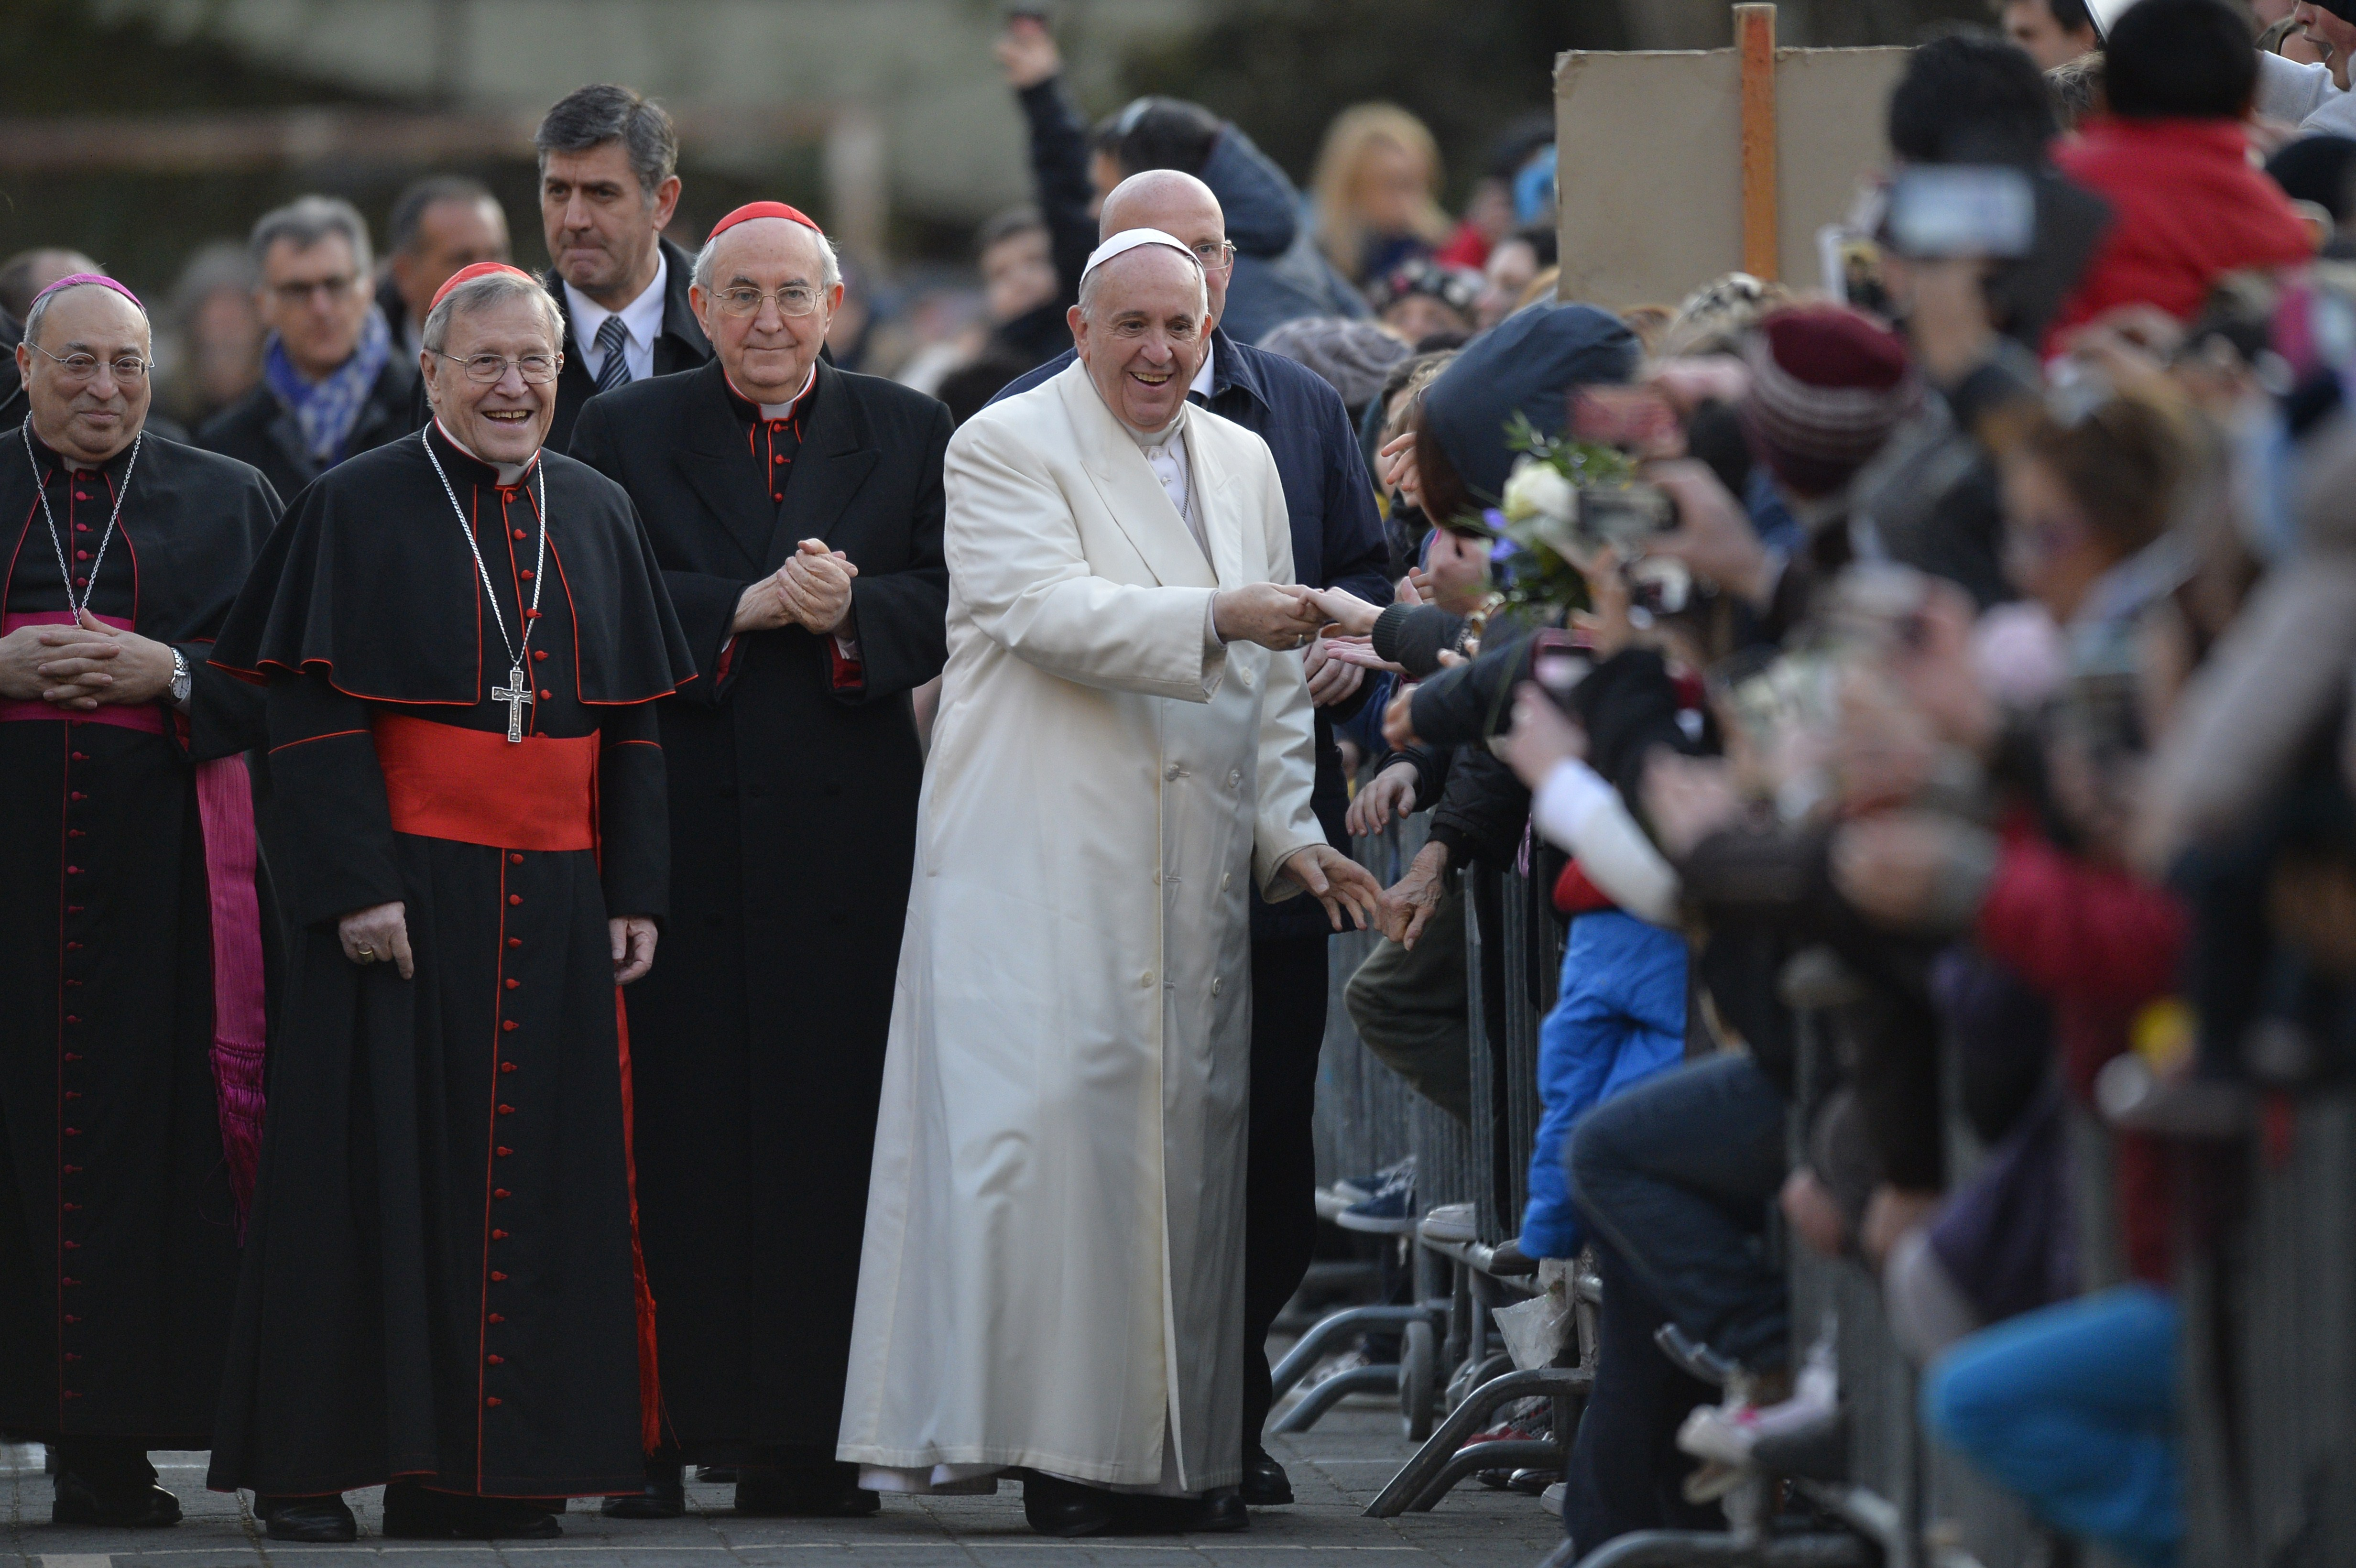 Pope Francis (C) greets the crowd as he arrives for a visit to the Roman Parish of  Ognissanti  on March 7, 2015 in Rome.